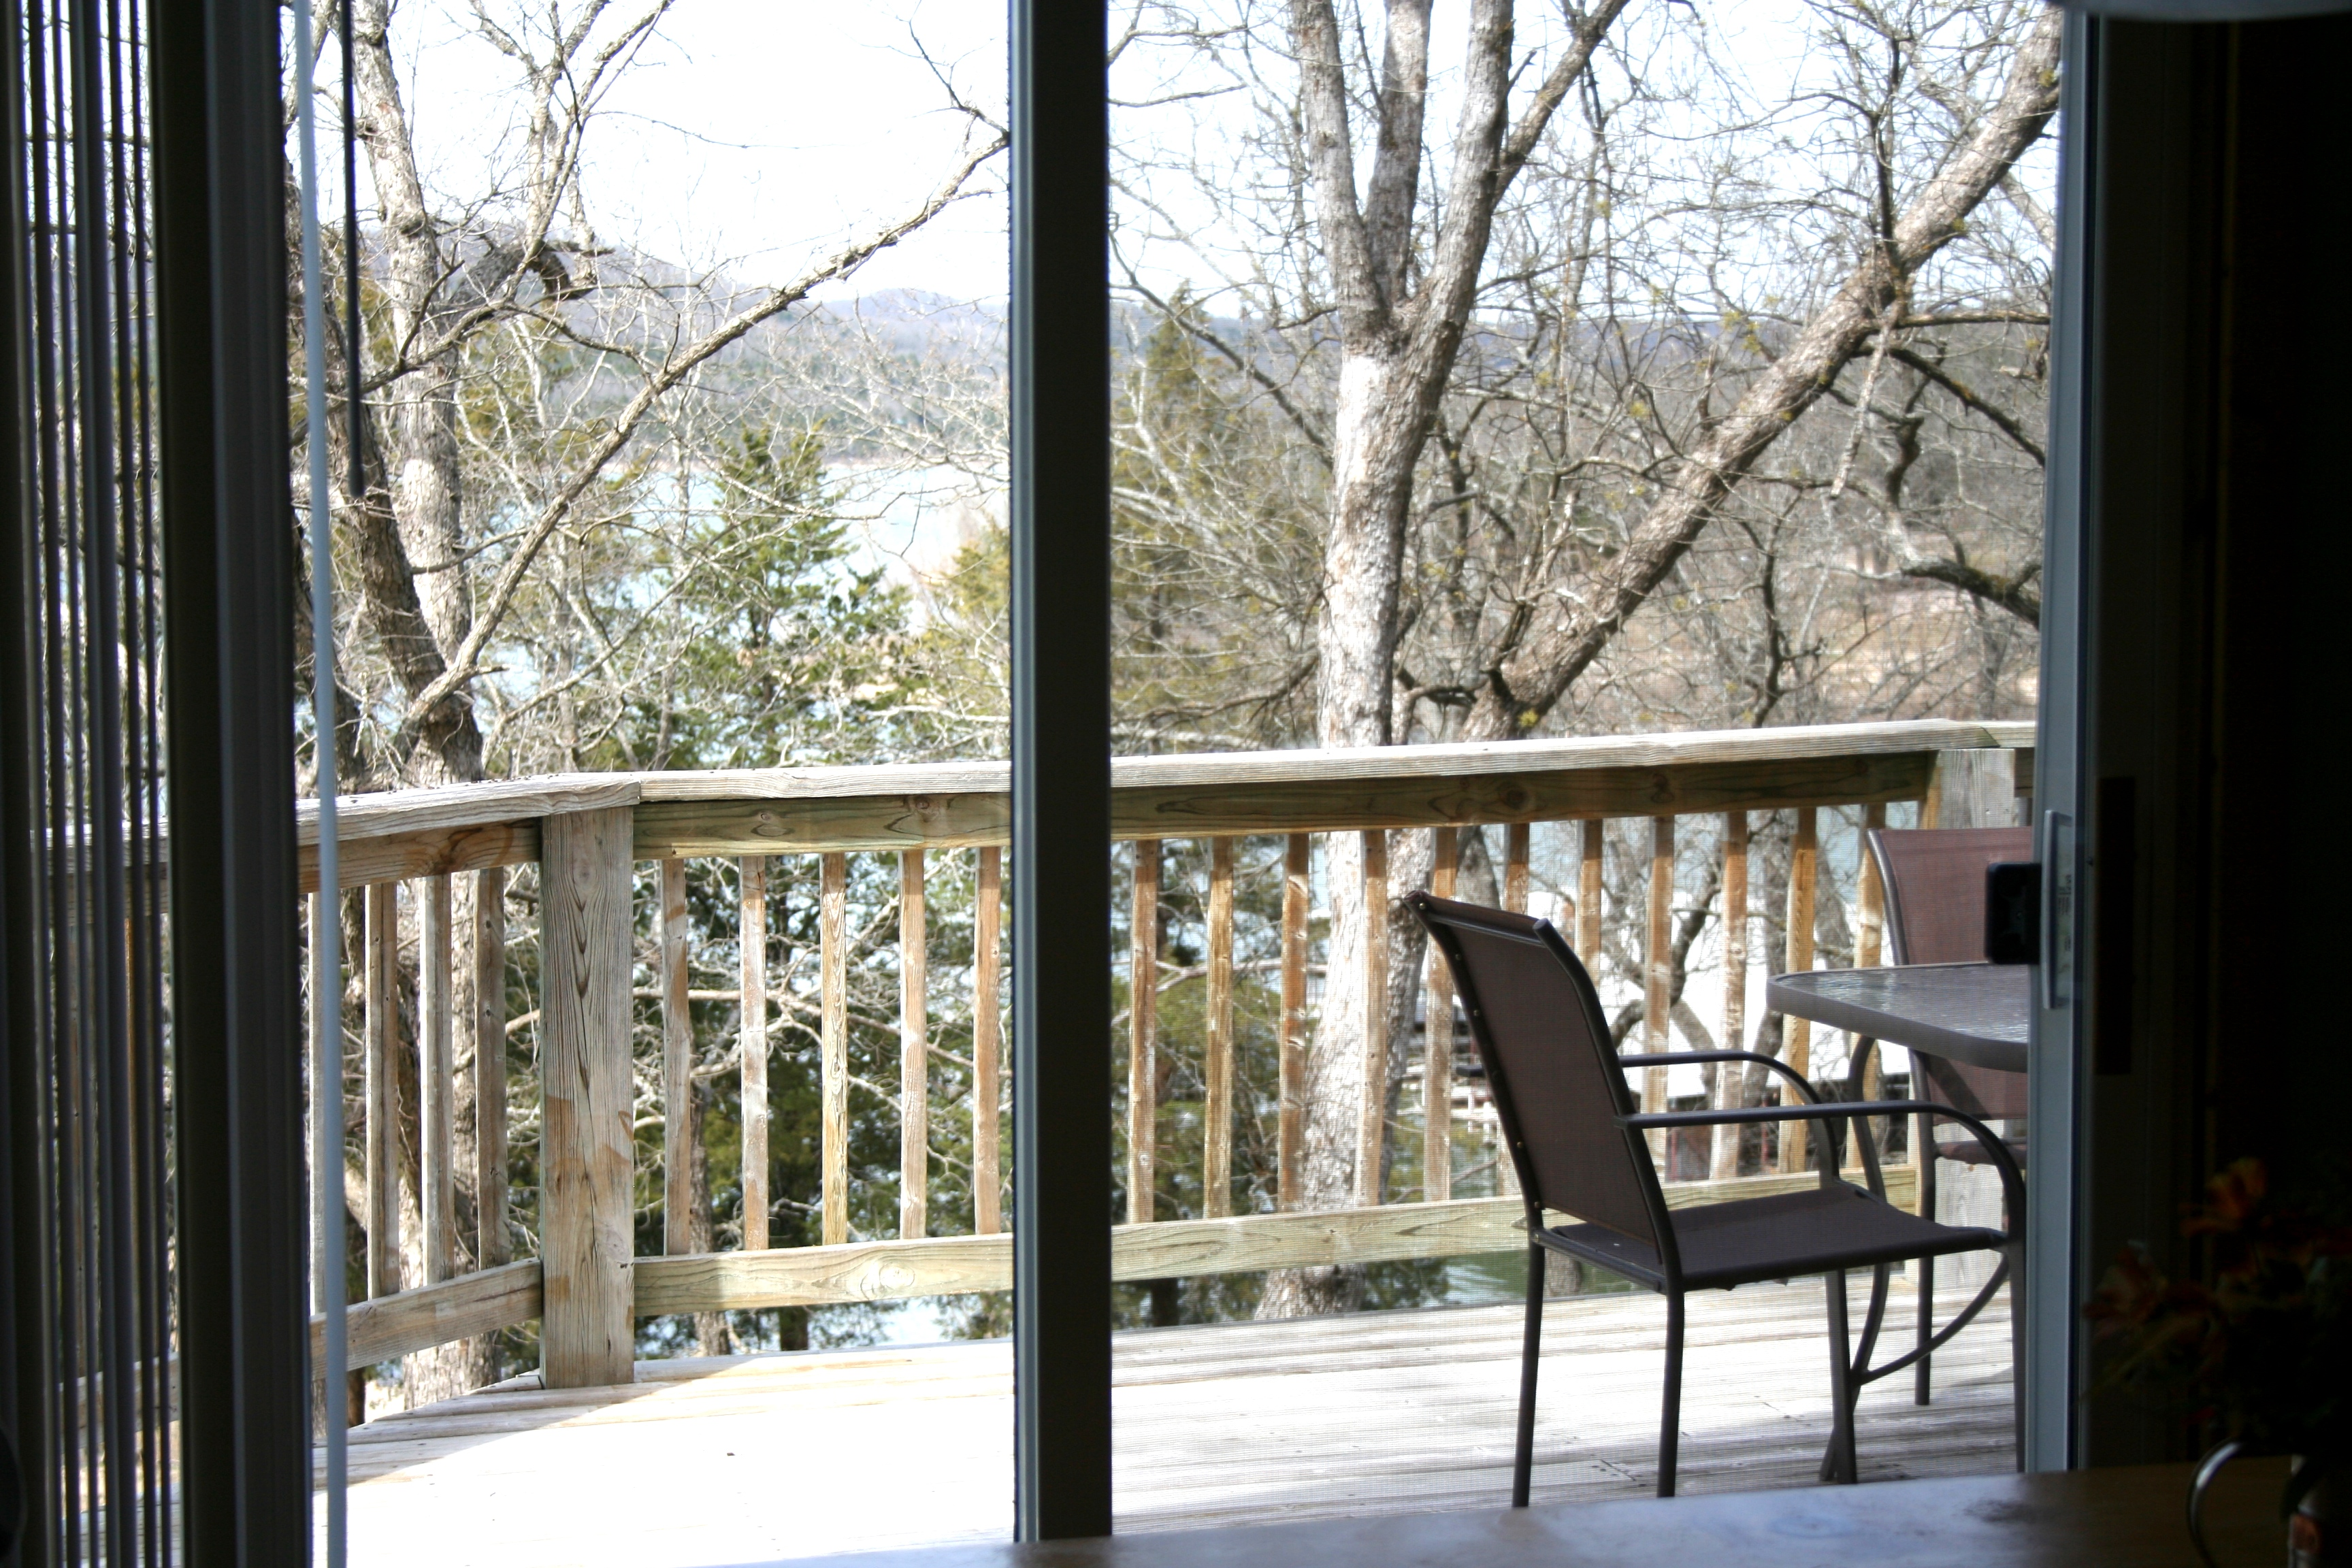 Lakeside Home #2 – 3 Beds / 2 Baths – King's Cove Resort